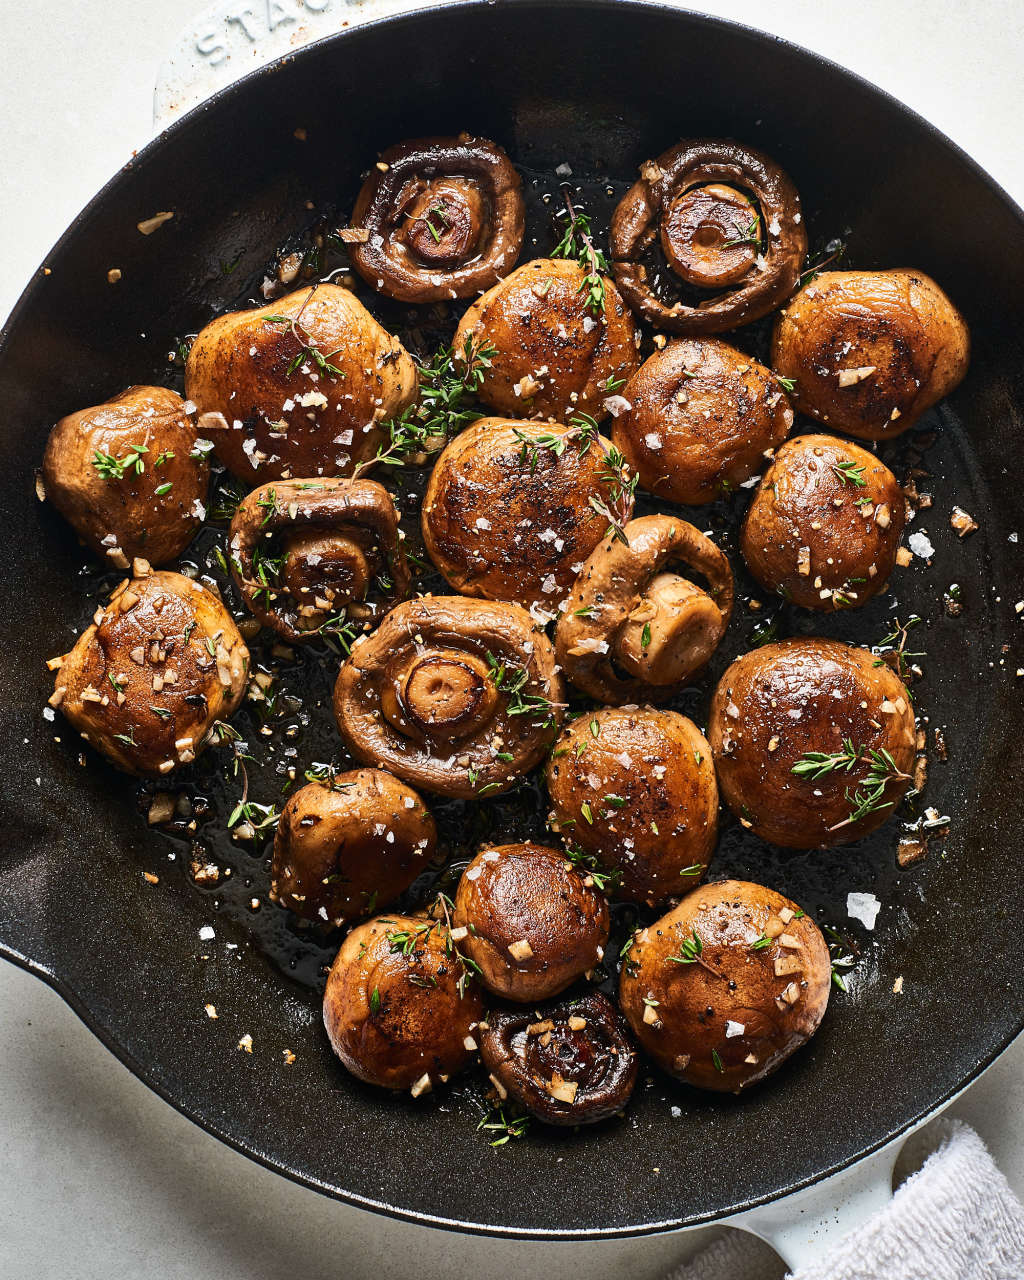 Easy 15-Minute Garlic Butter Mushrooms Go with Everything